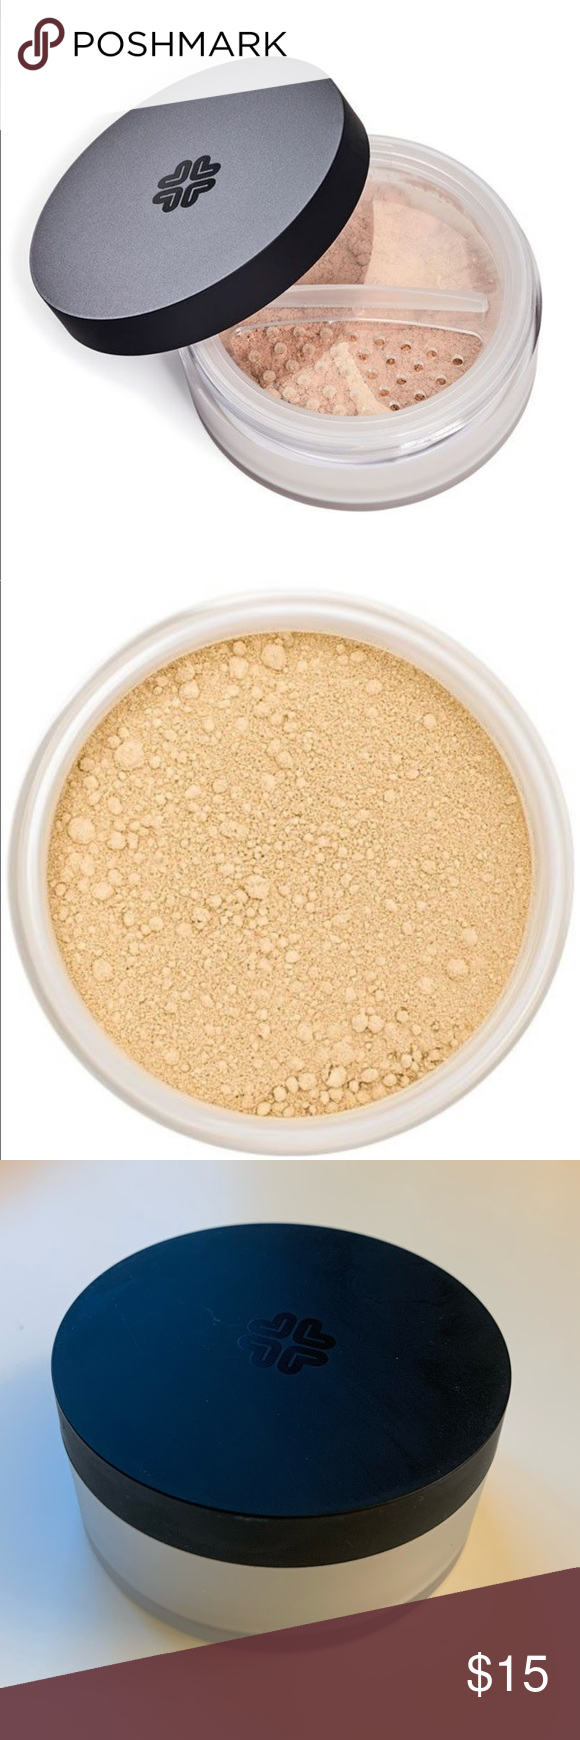 Lily Lolo Mineral Foundation - Butterscotch Used twice. Lily Lolo Makeup Foundation #lilylolo Lily Lolo Mineral Foundation - Butterscotch Used twice. Lily Lolo Makeup Foundation #lilylolo